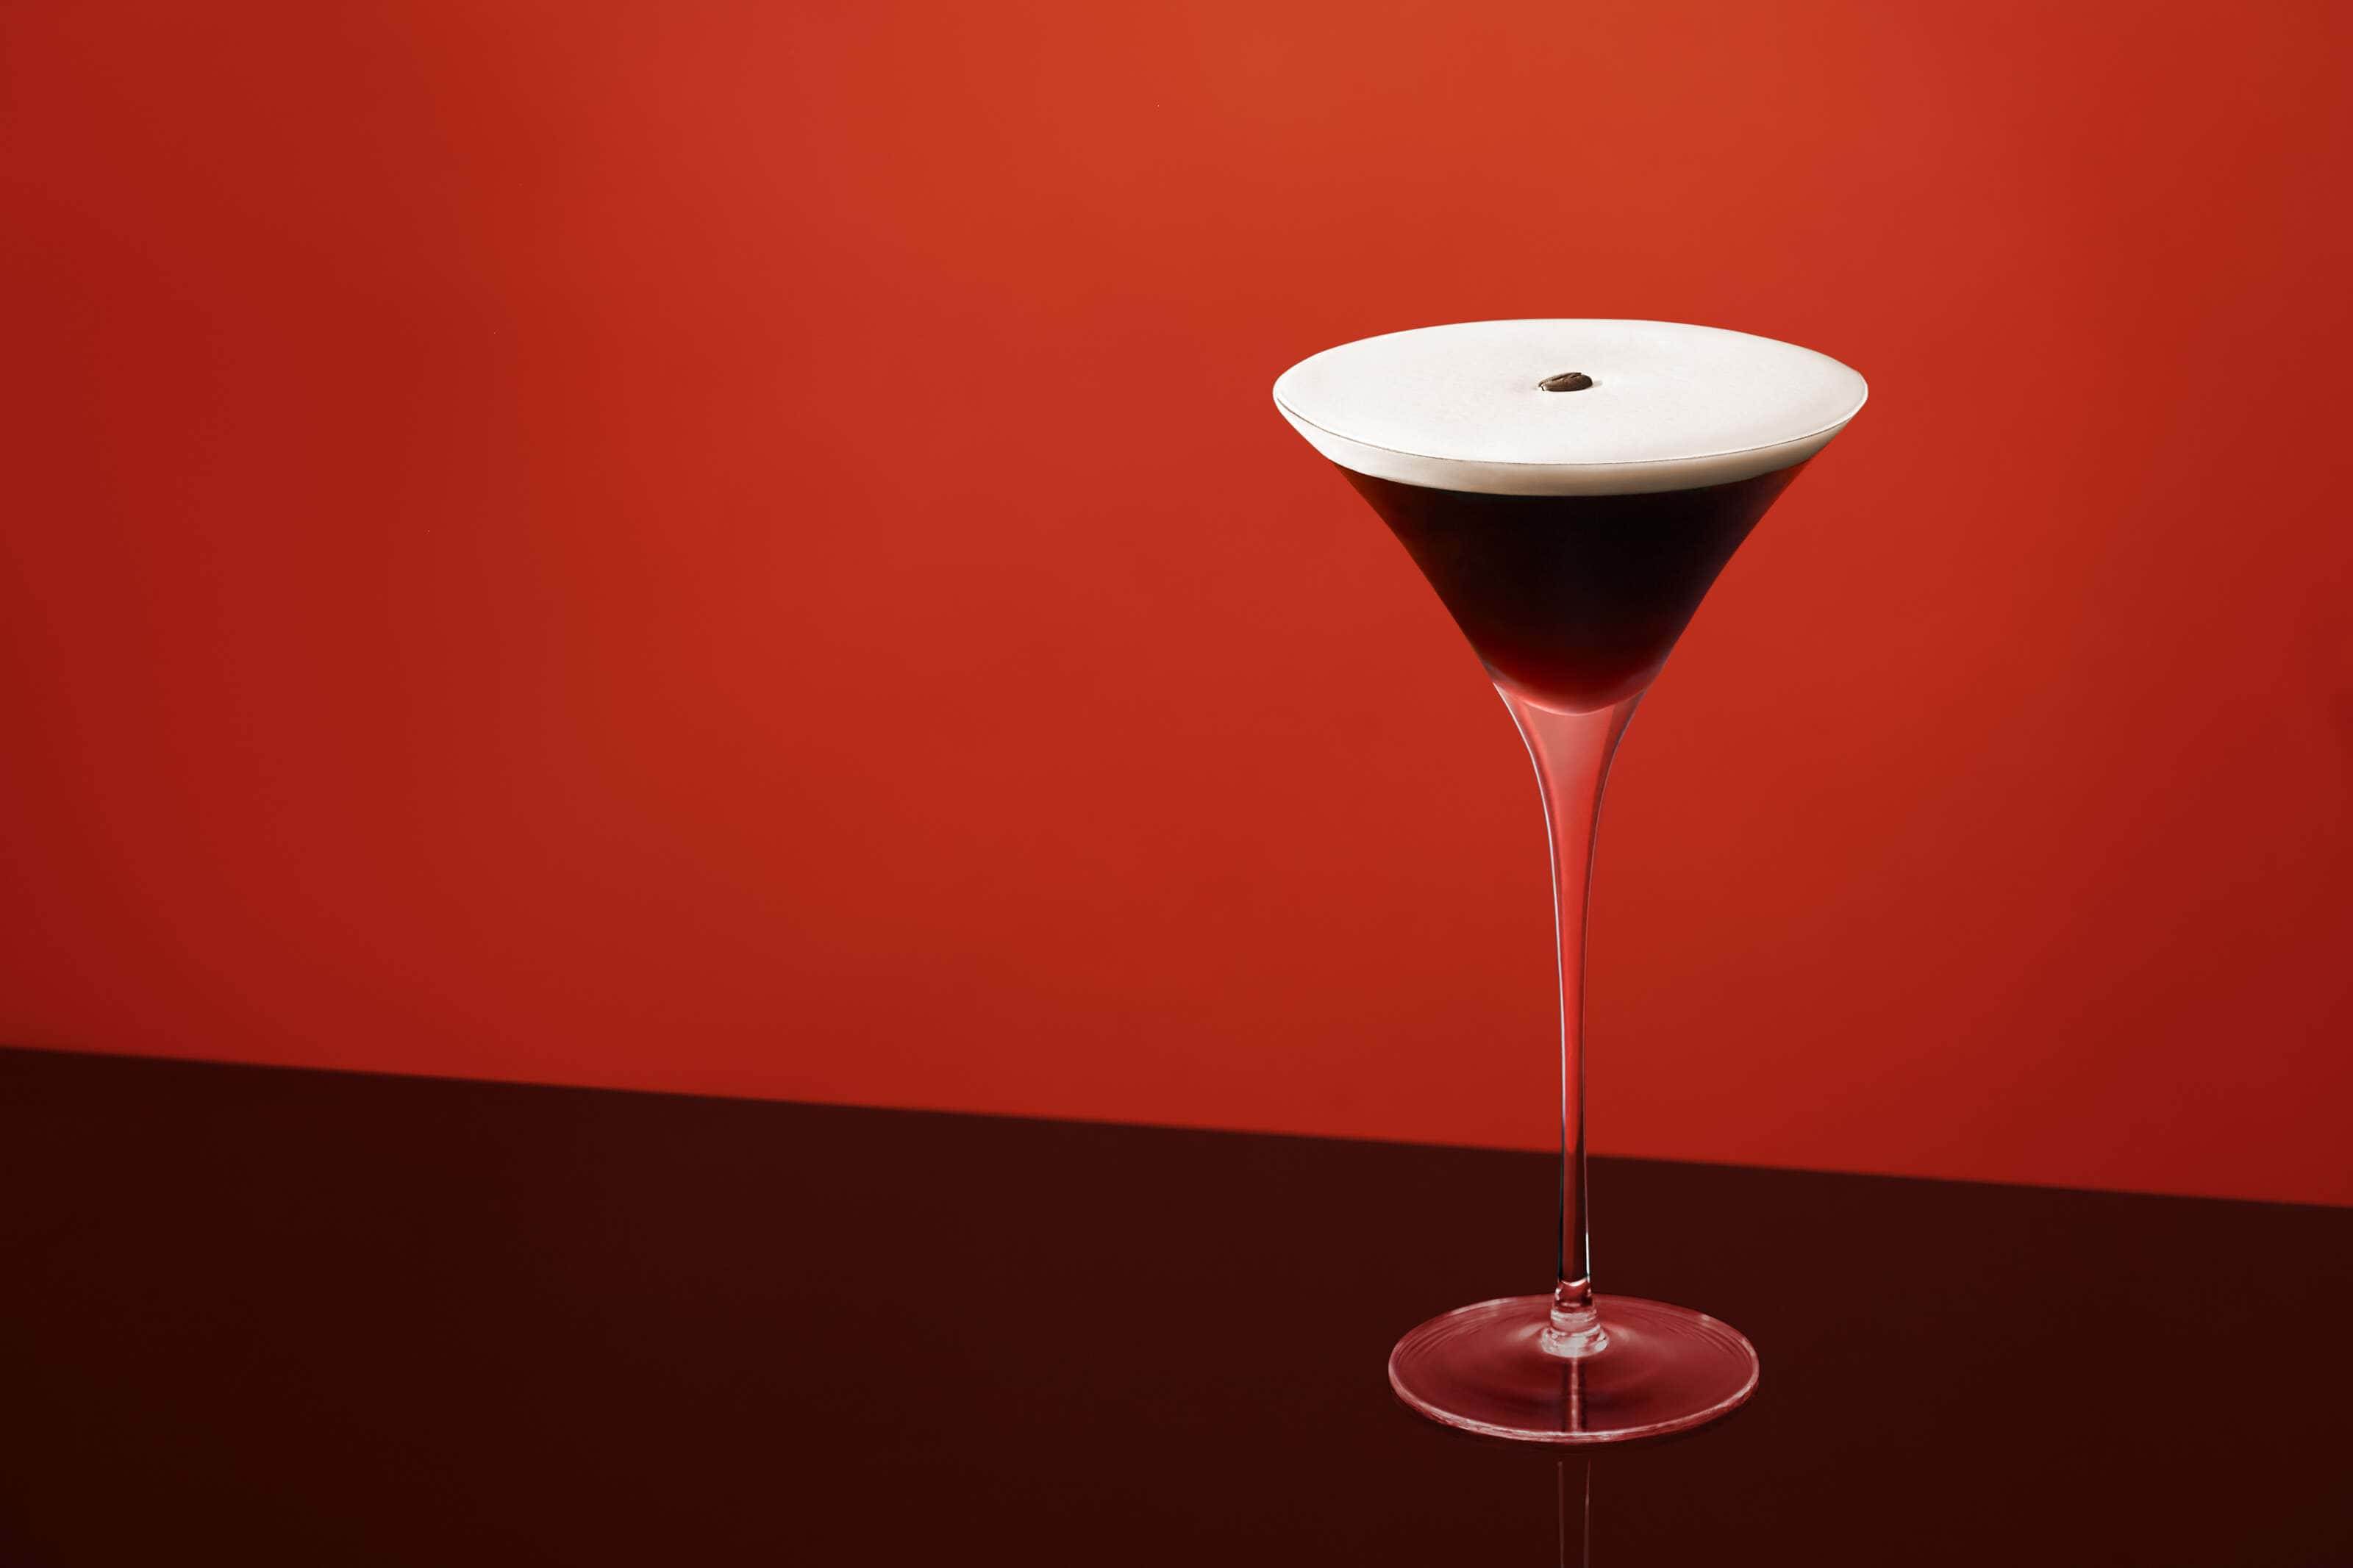 espresso_martini_standing on black perspex with red background